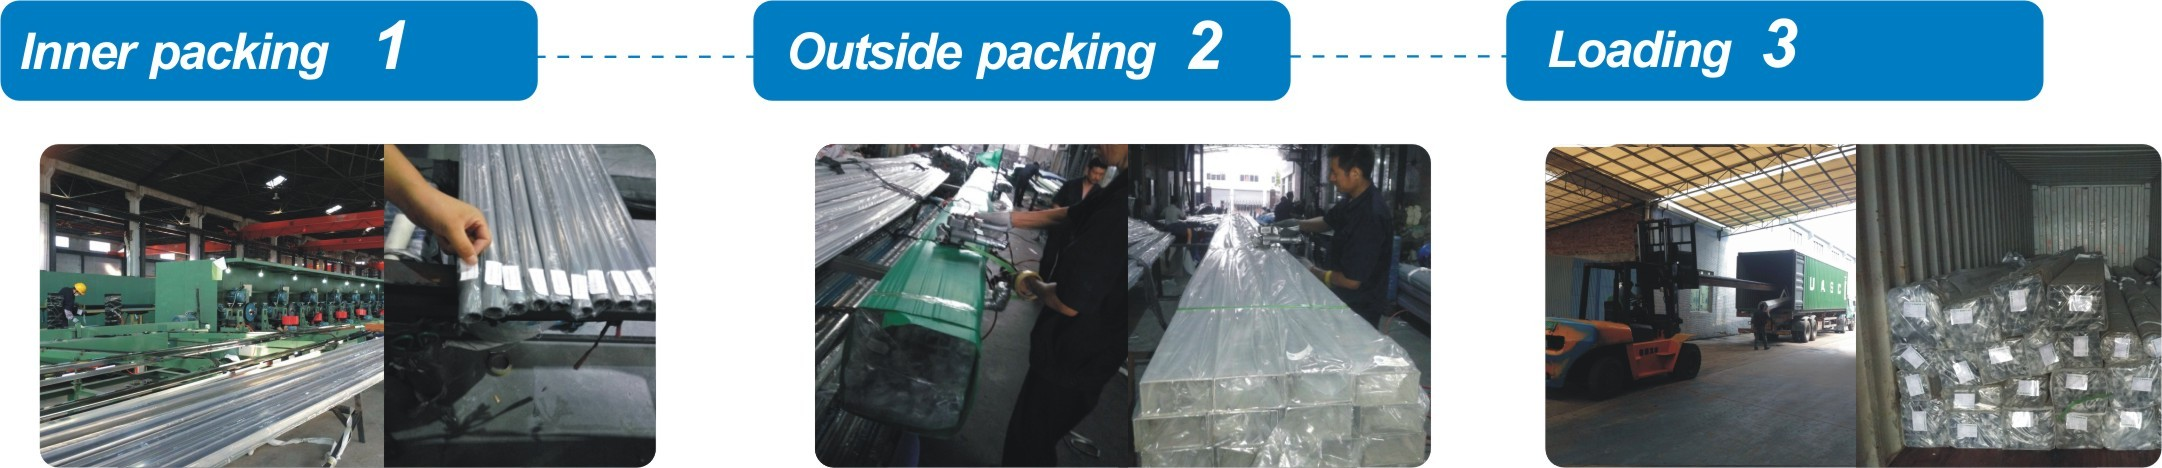 stainless steel tube packaing